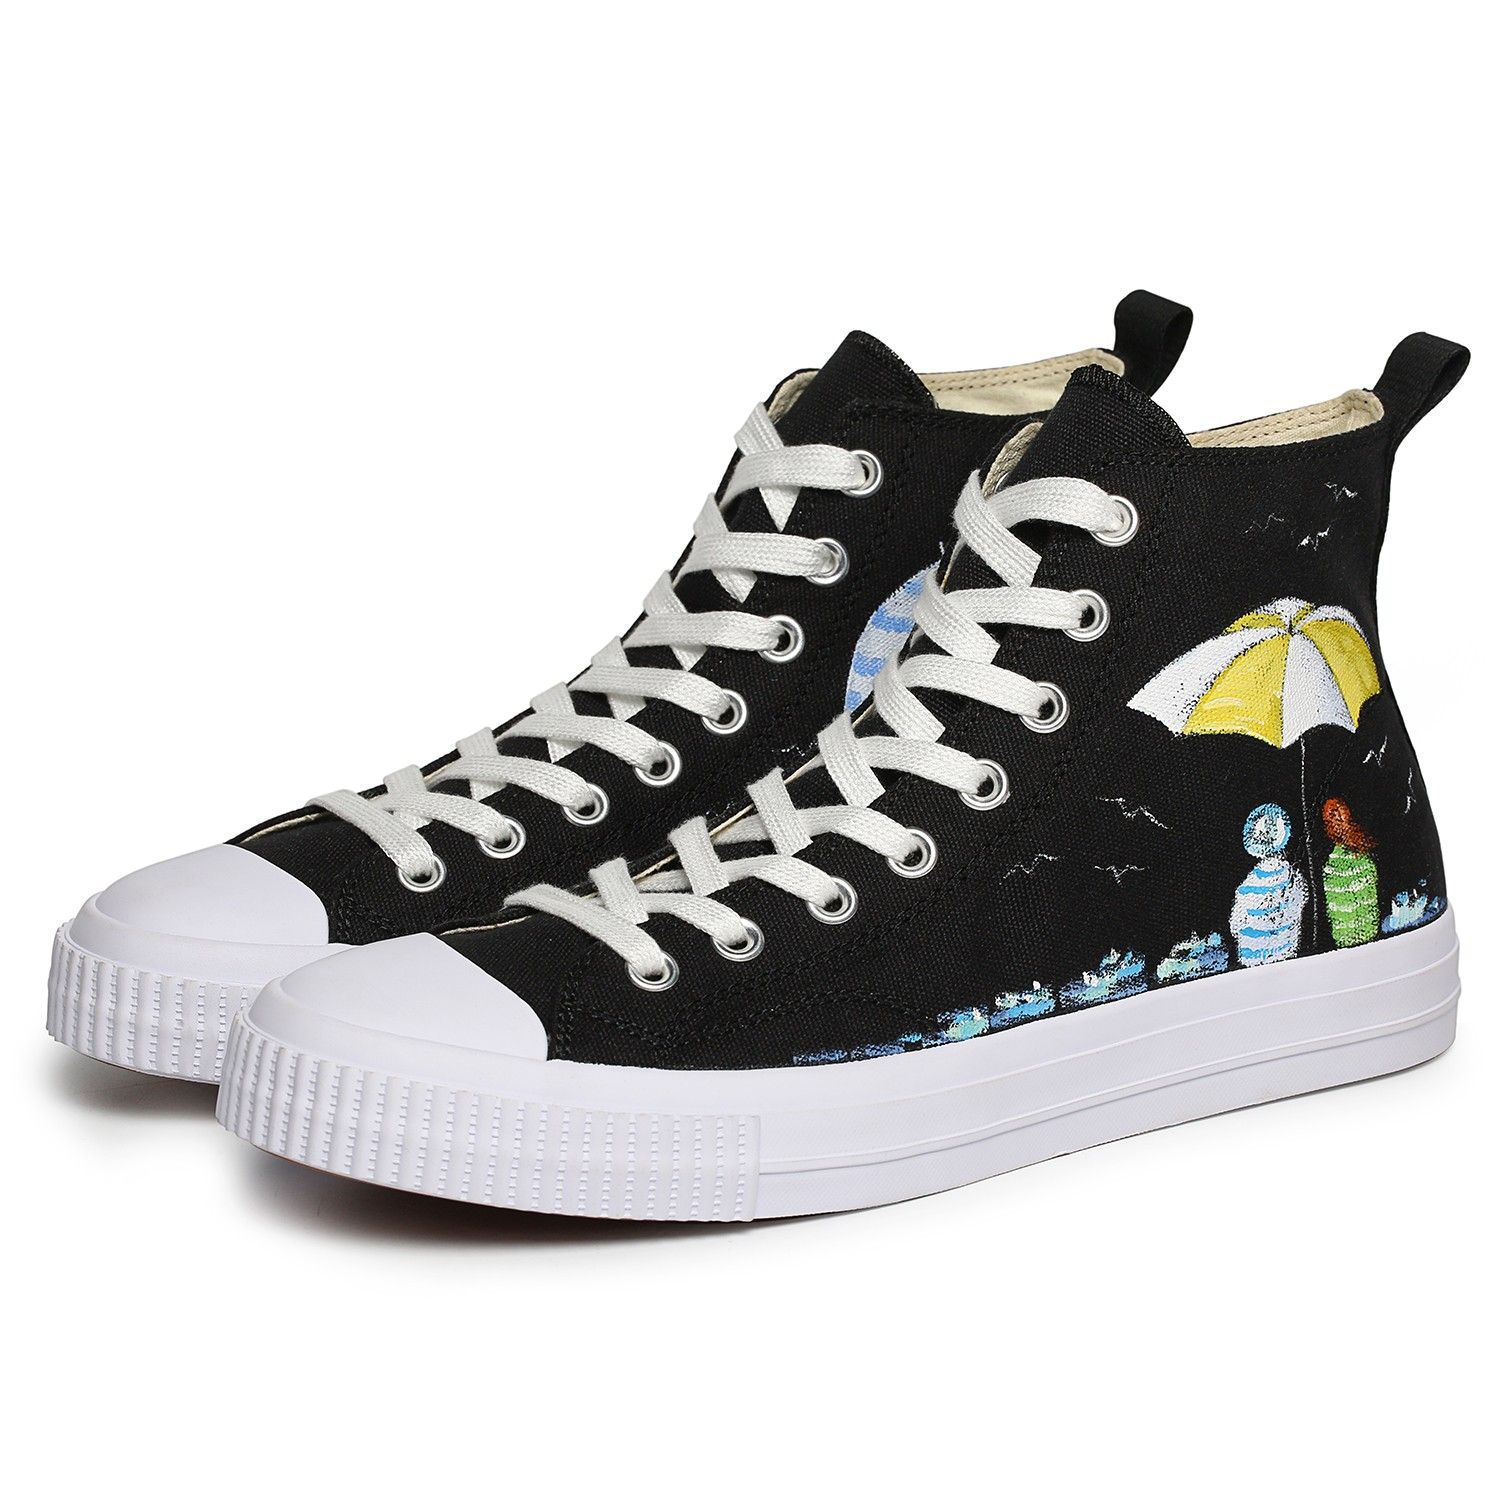 Omine WP2005 Flat Shoes Men High Top Color Painted Shoes Canvas - White US 9